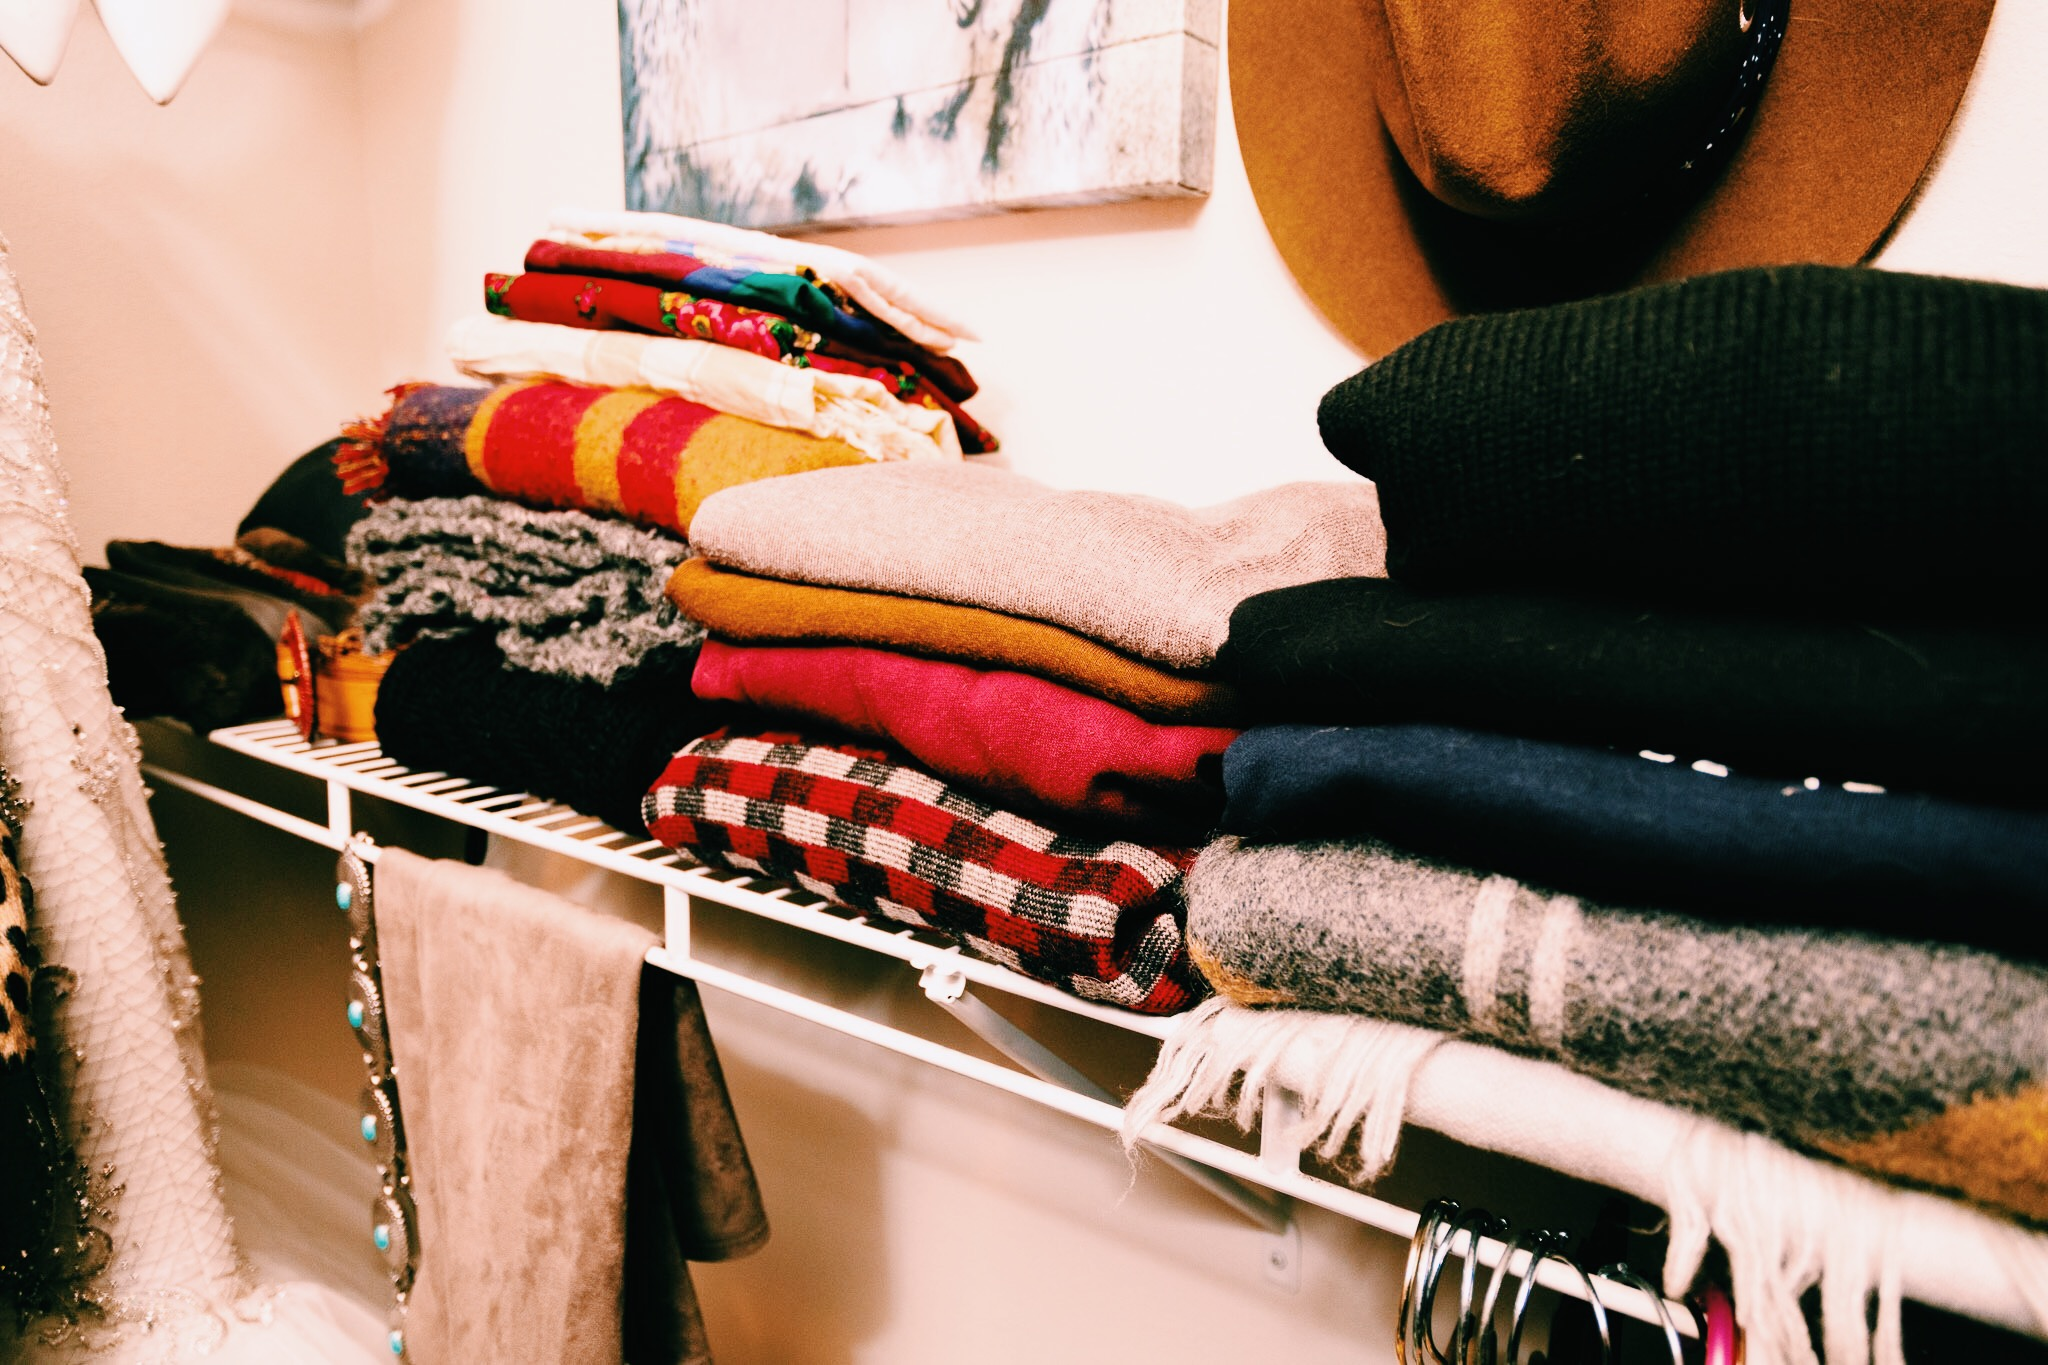 Scarves folded next to sweaters for easy access and styling.